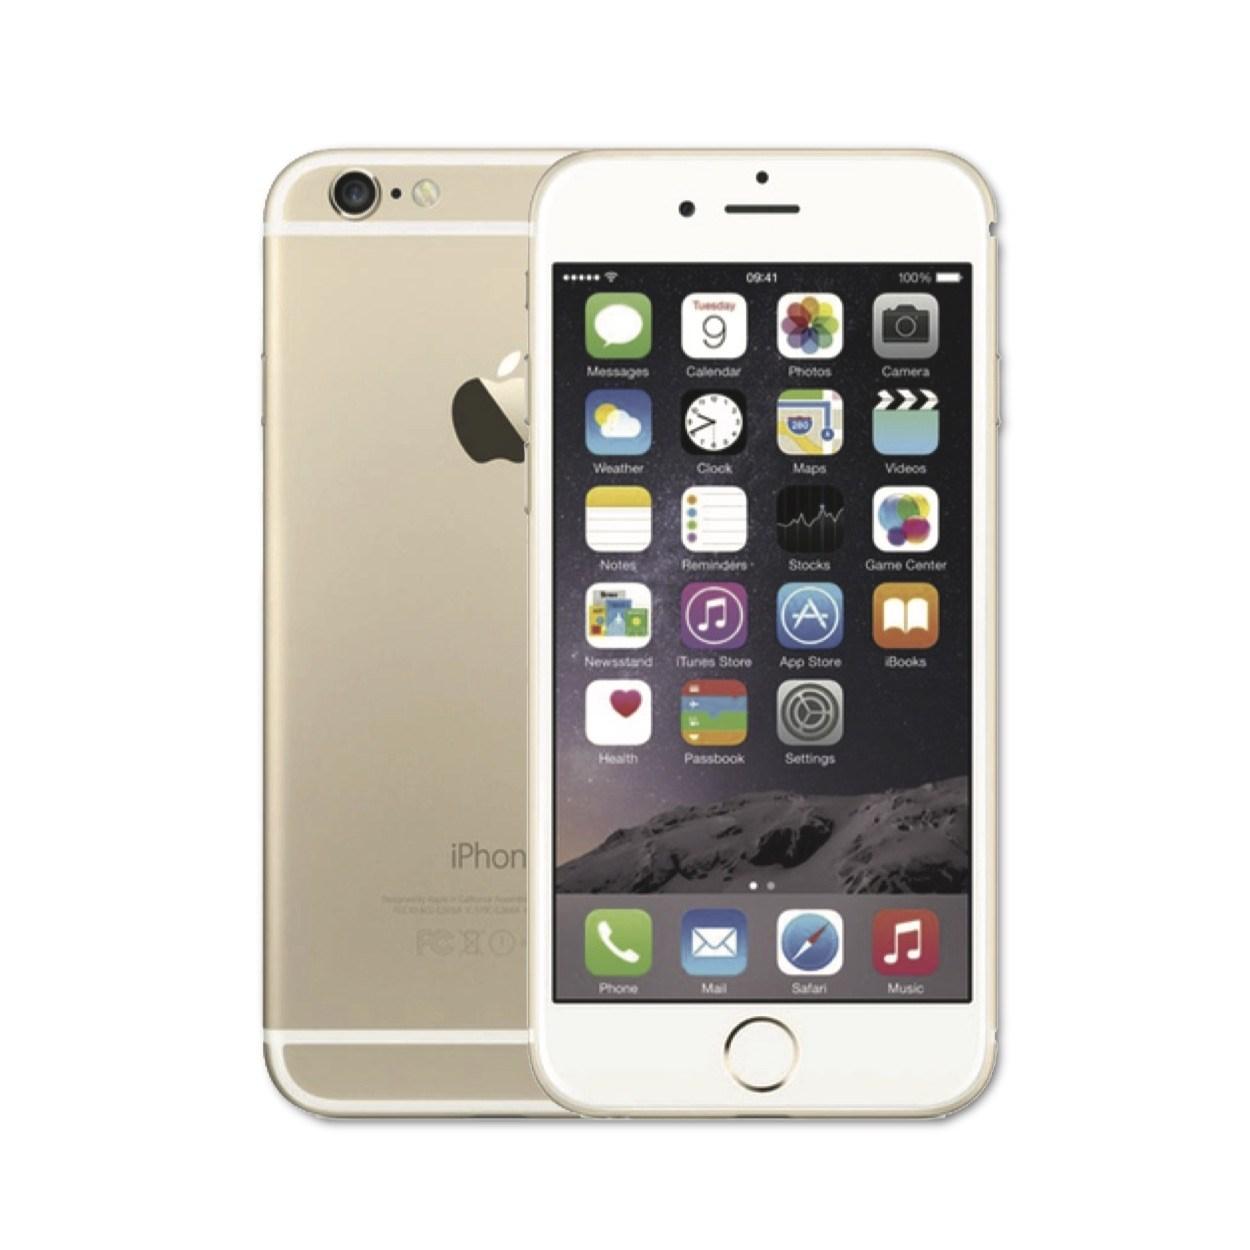 iPhone 6 Gold - trangthienlong.com.vn